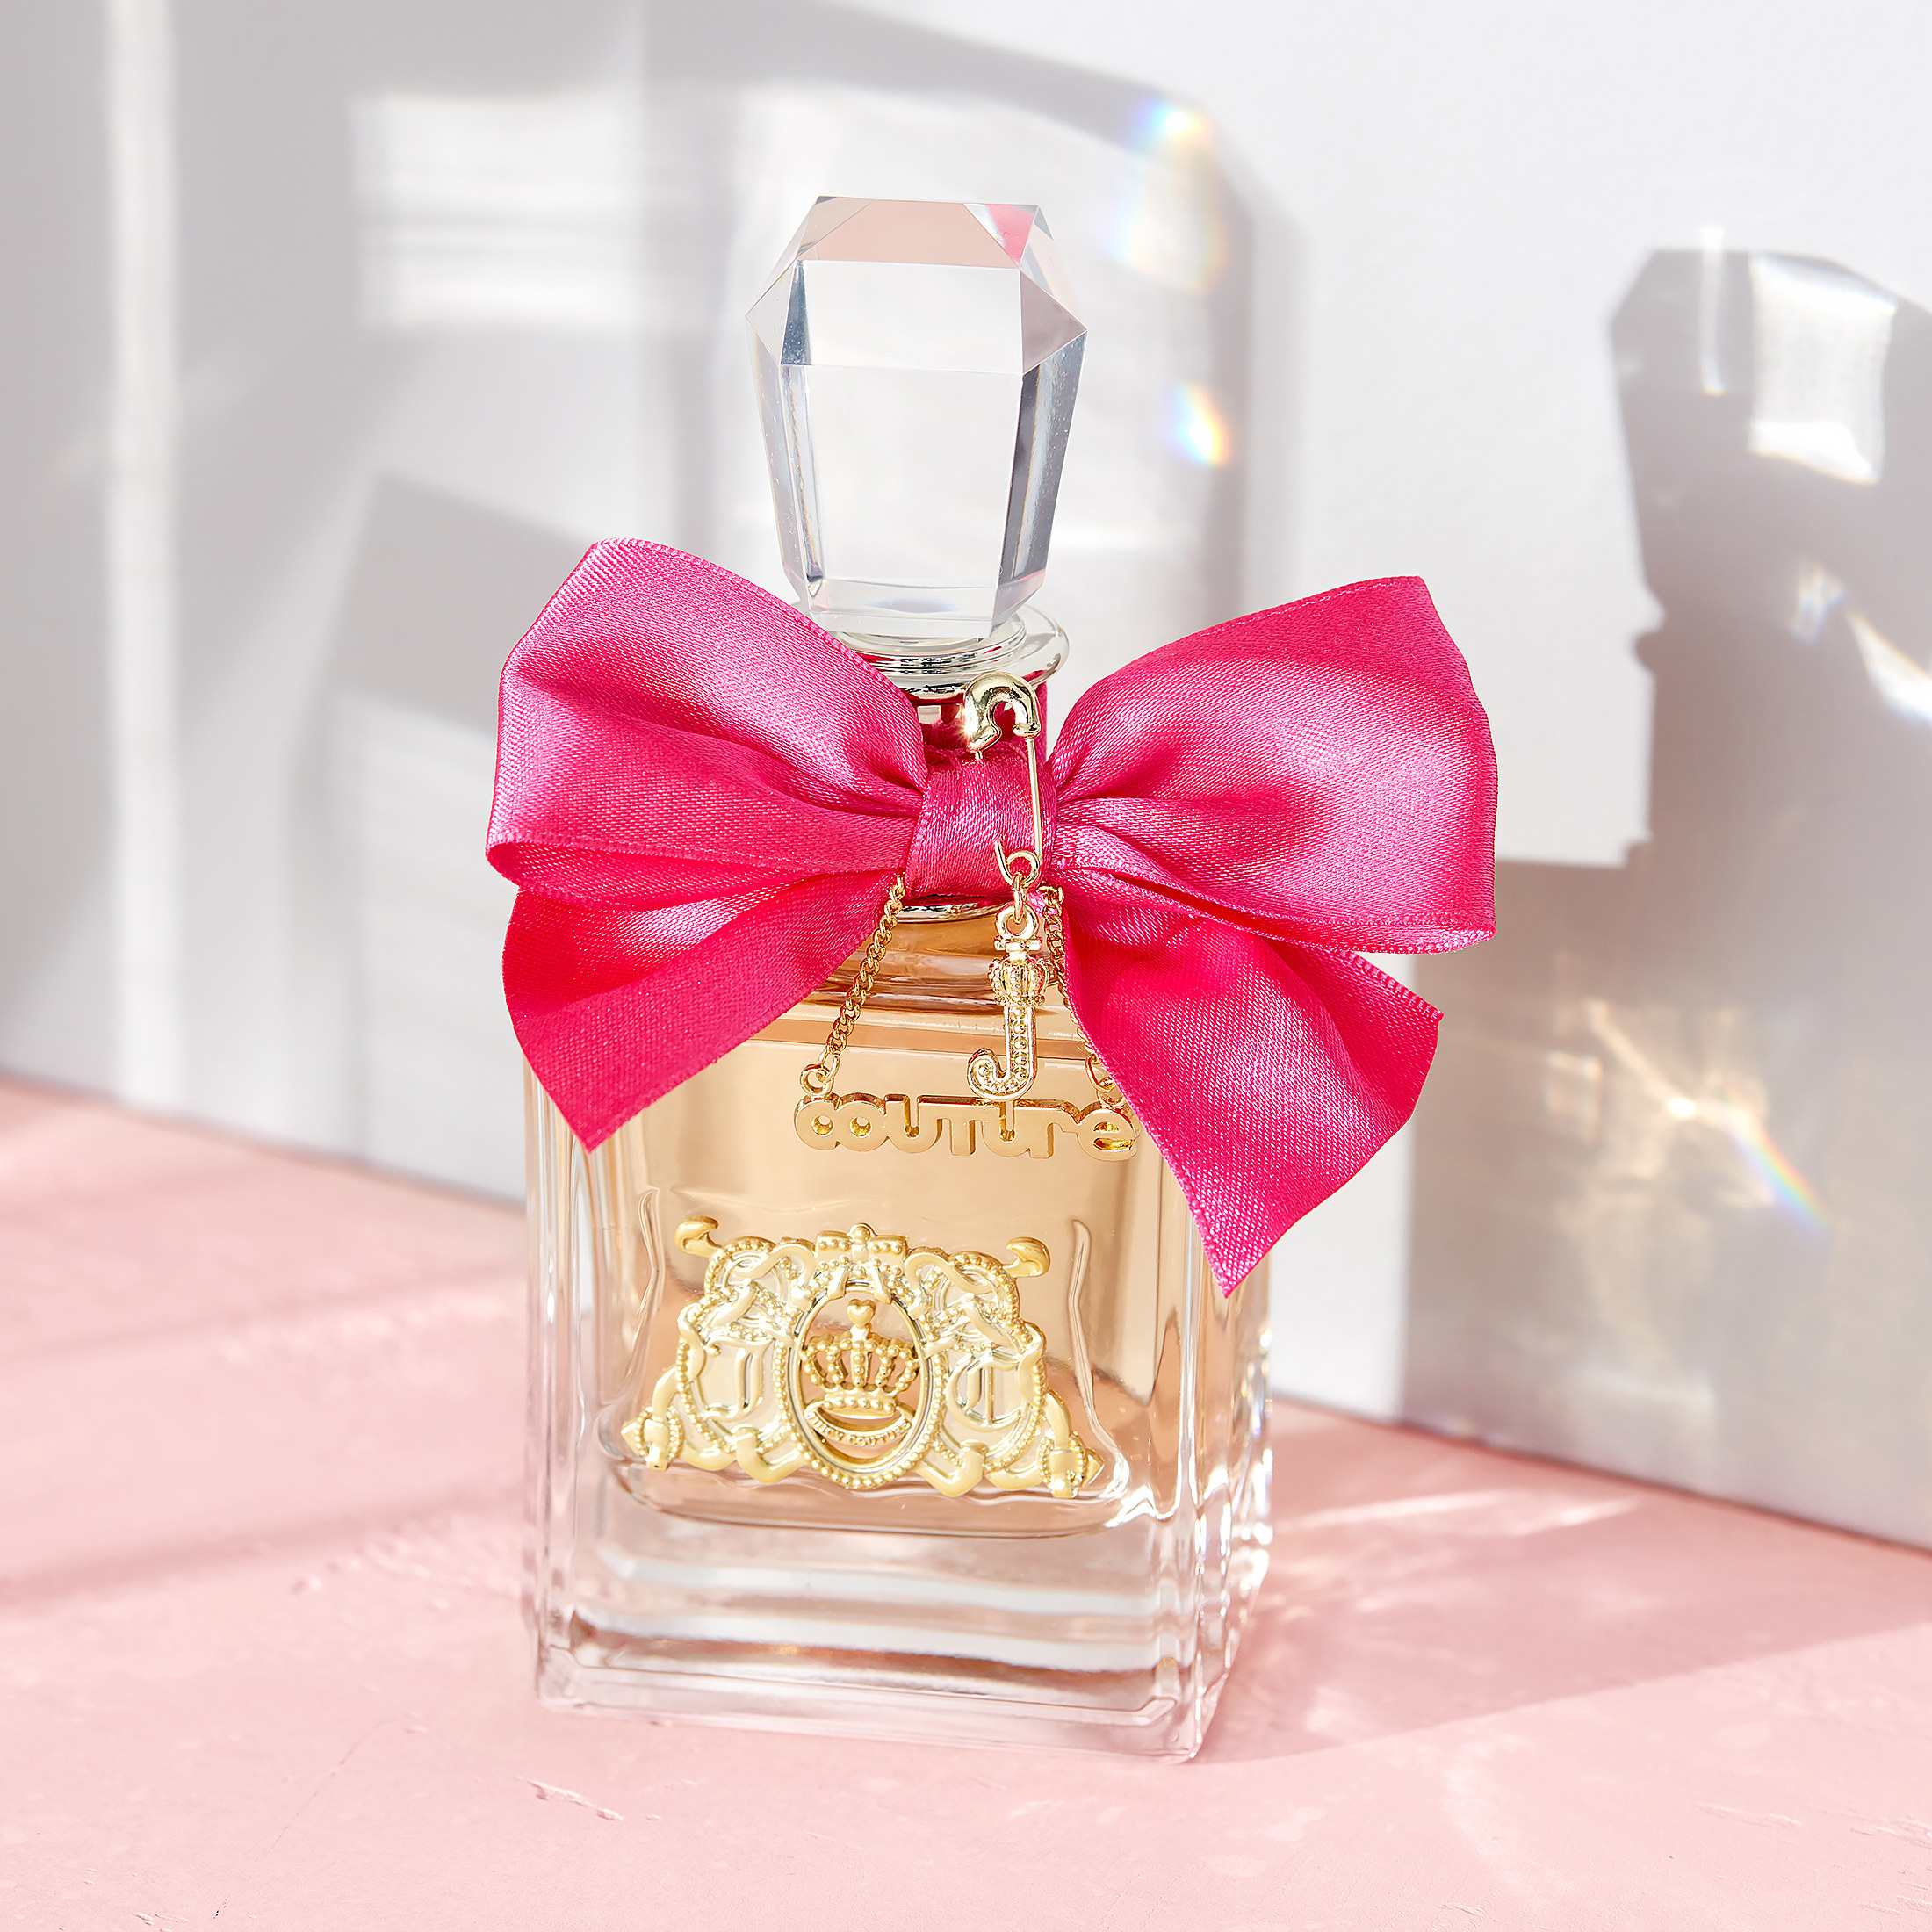 juicy couture viva la juicy perfume bottle with a pink bow on it